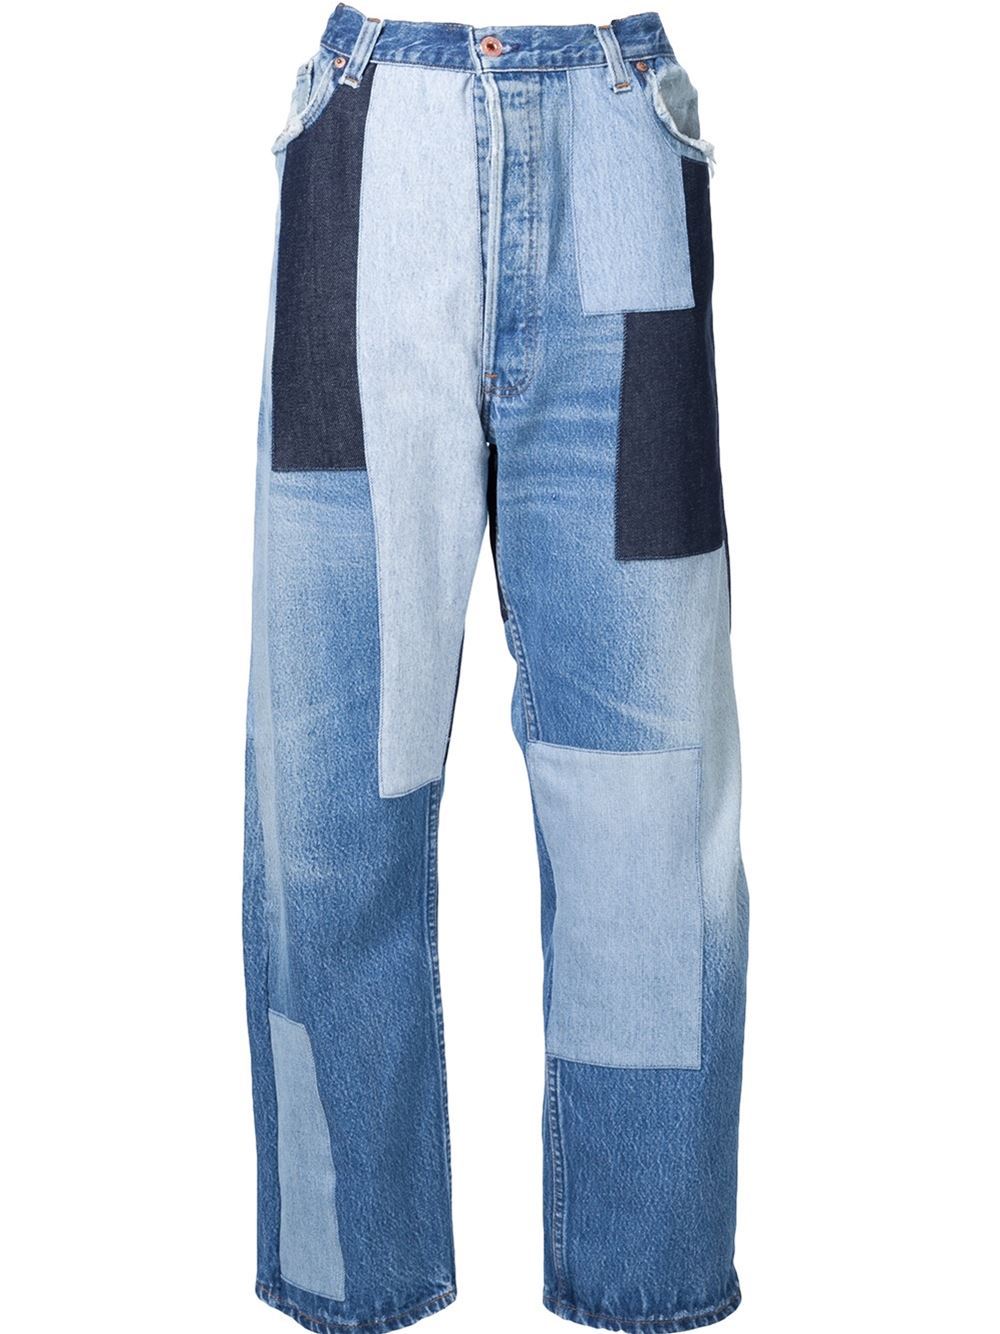 Off-White Wide-Leg Patchwork Jeans